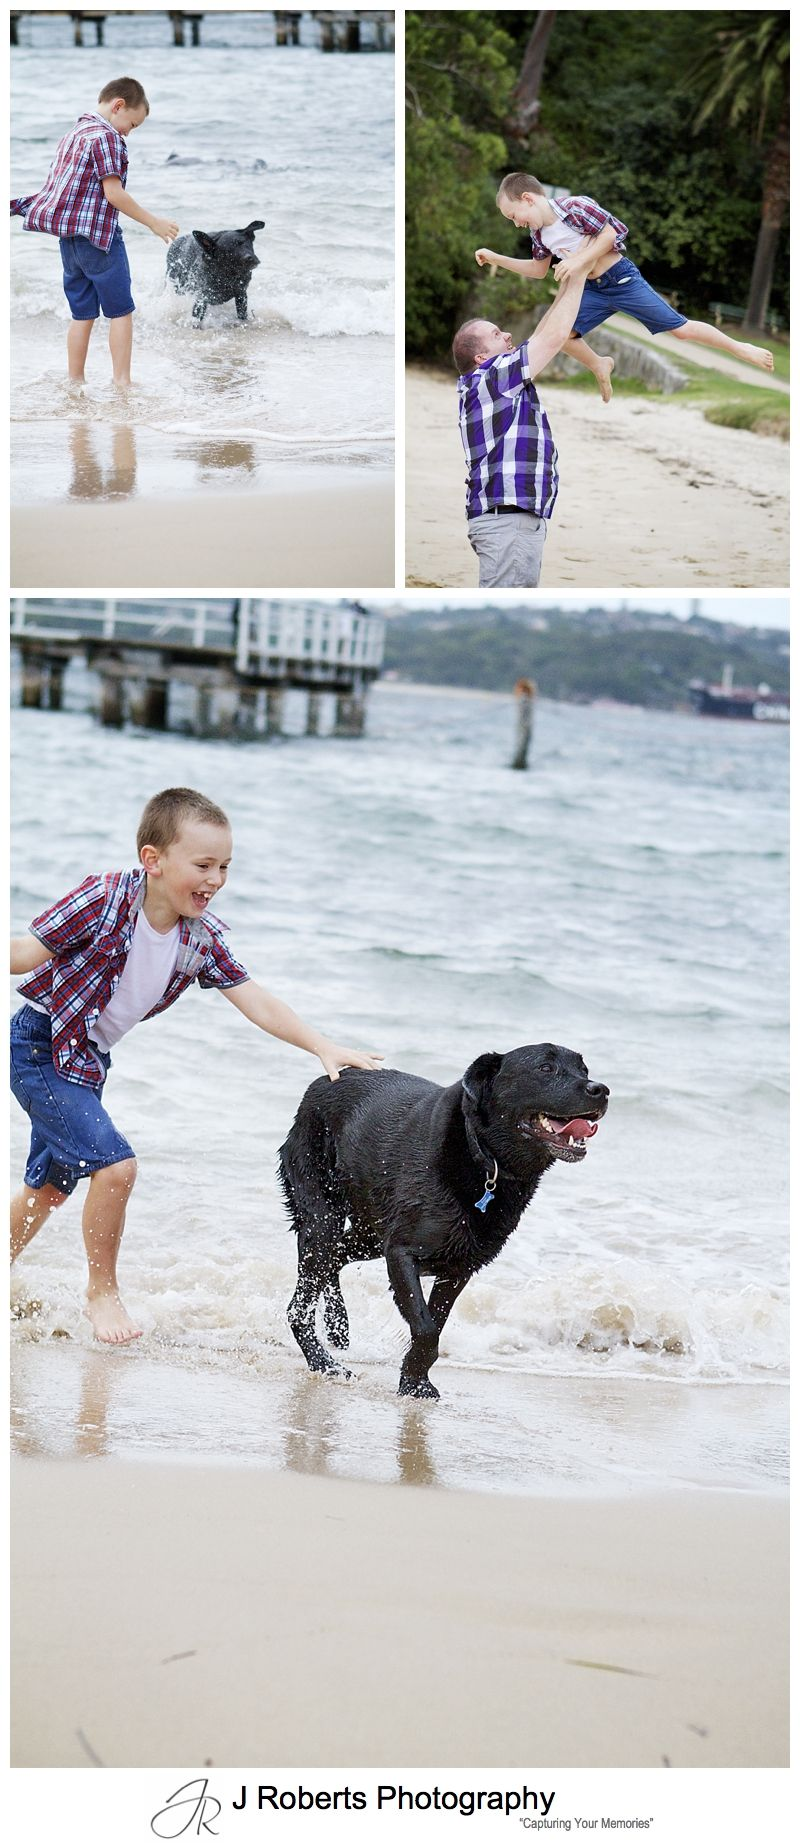 7 year old boy having fun at the beach - sydney family portrait photographer